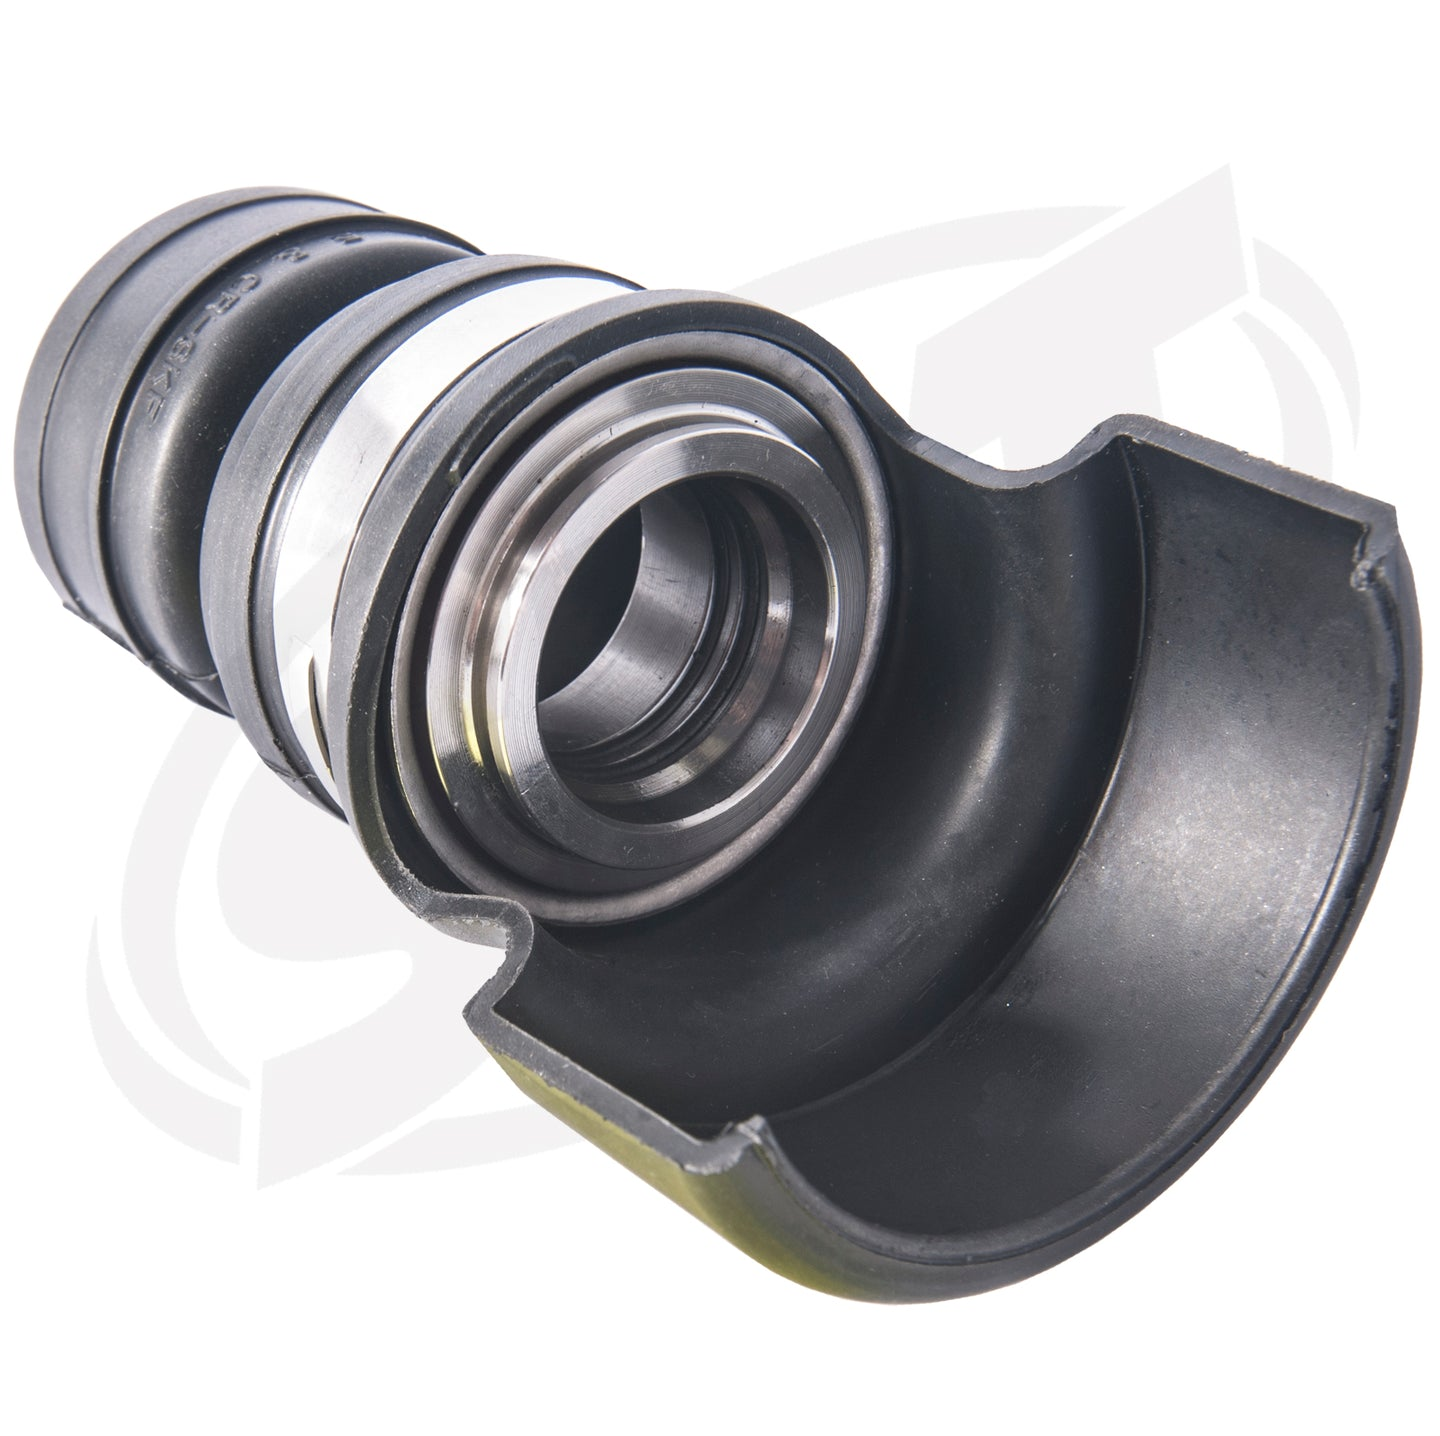 SBT Sea-Doo Ball Bearing with Bellow 2009 & 2010 ONLY